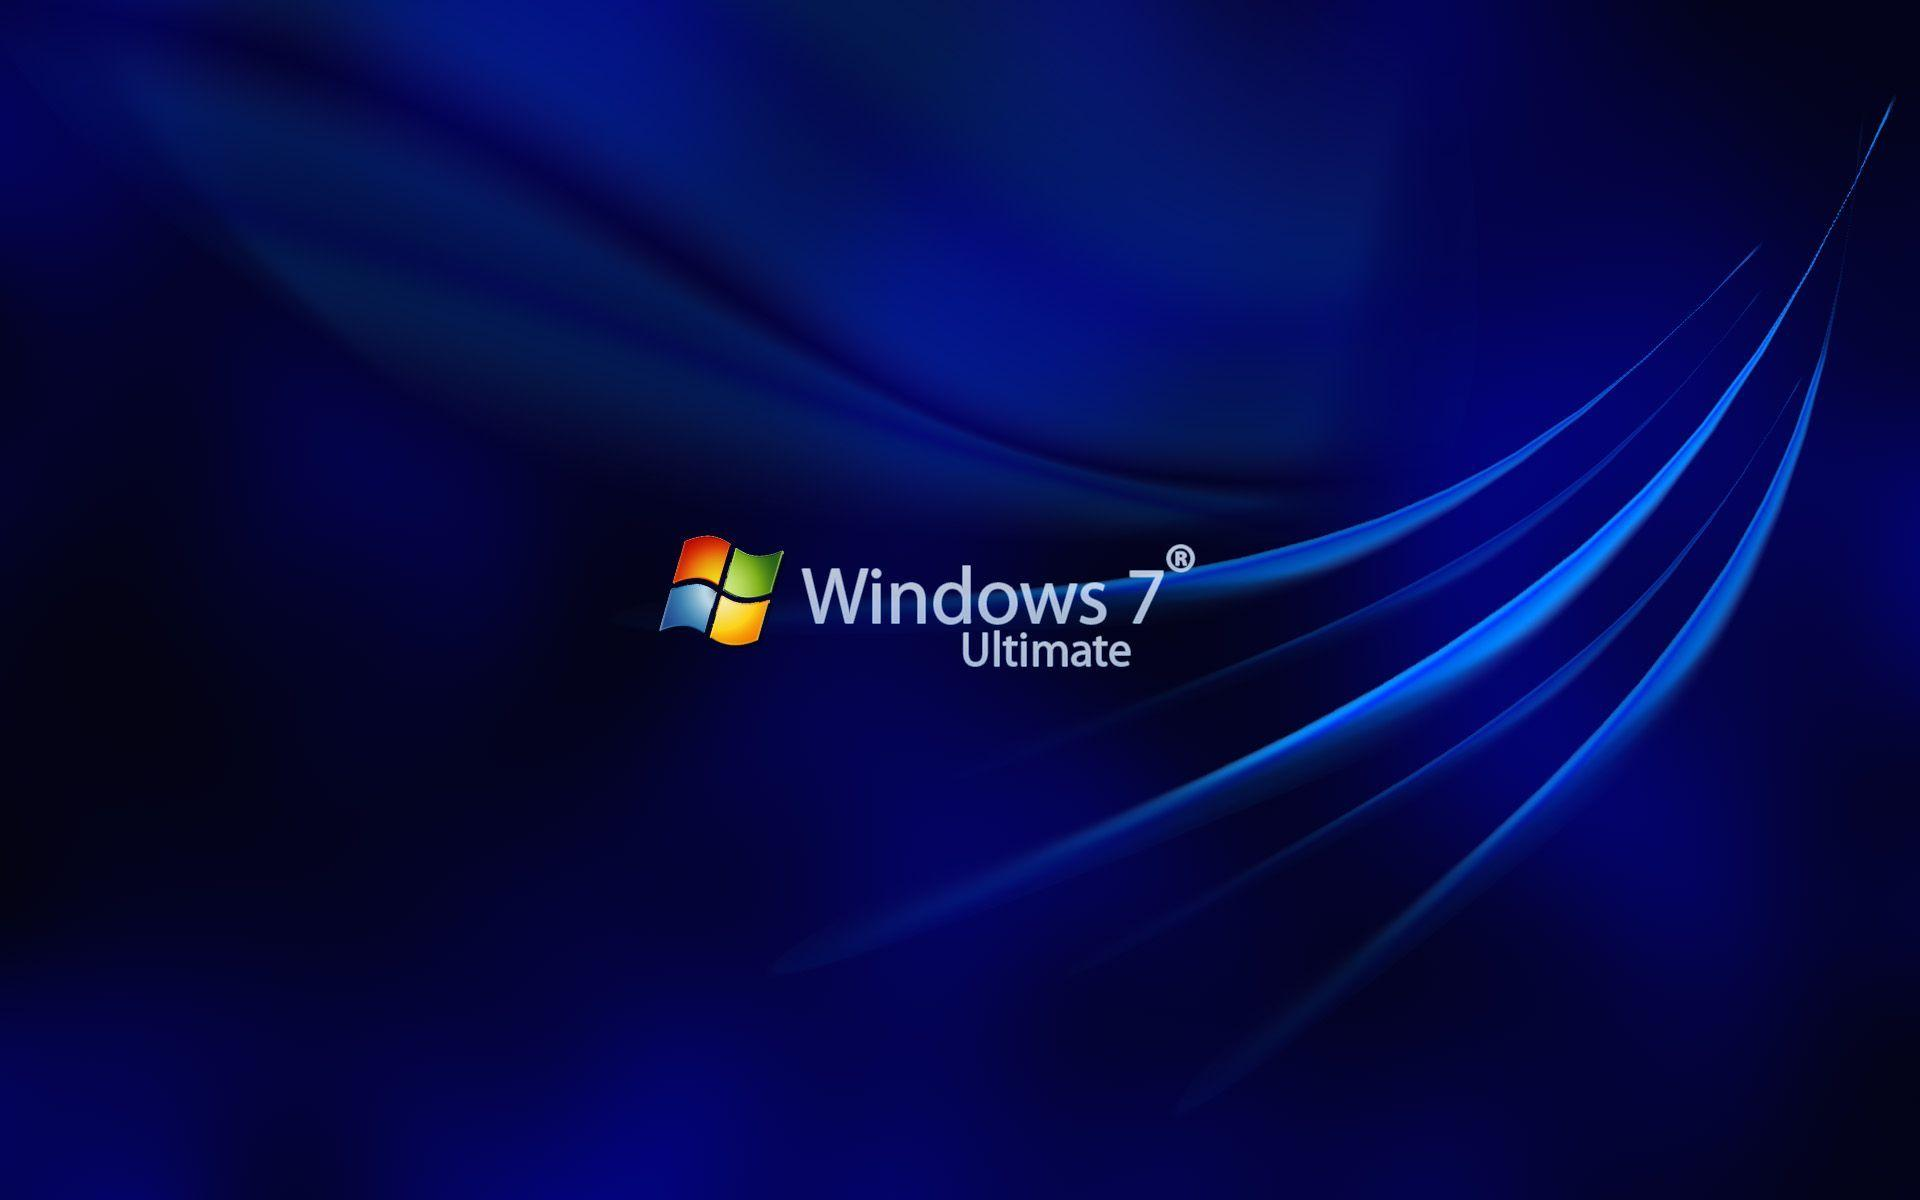 Wallpapers For > Windows 7 Ultimate Blue Wallpaper · Download